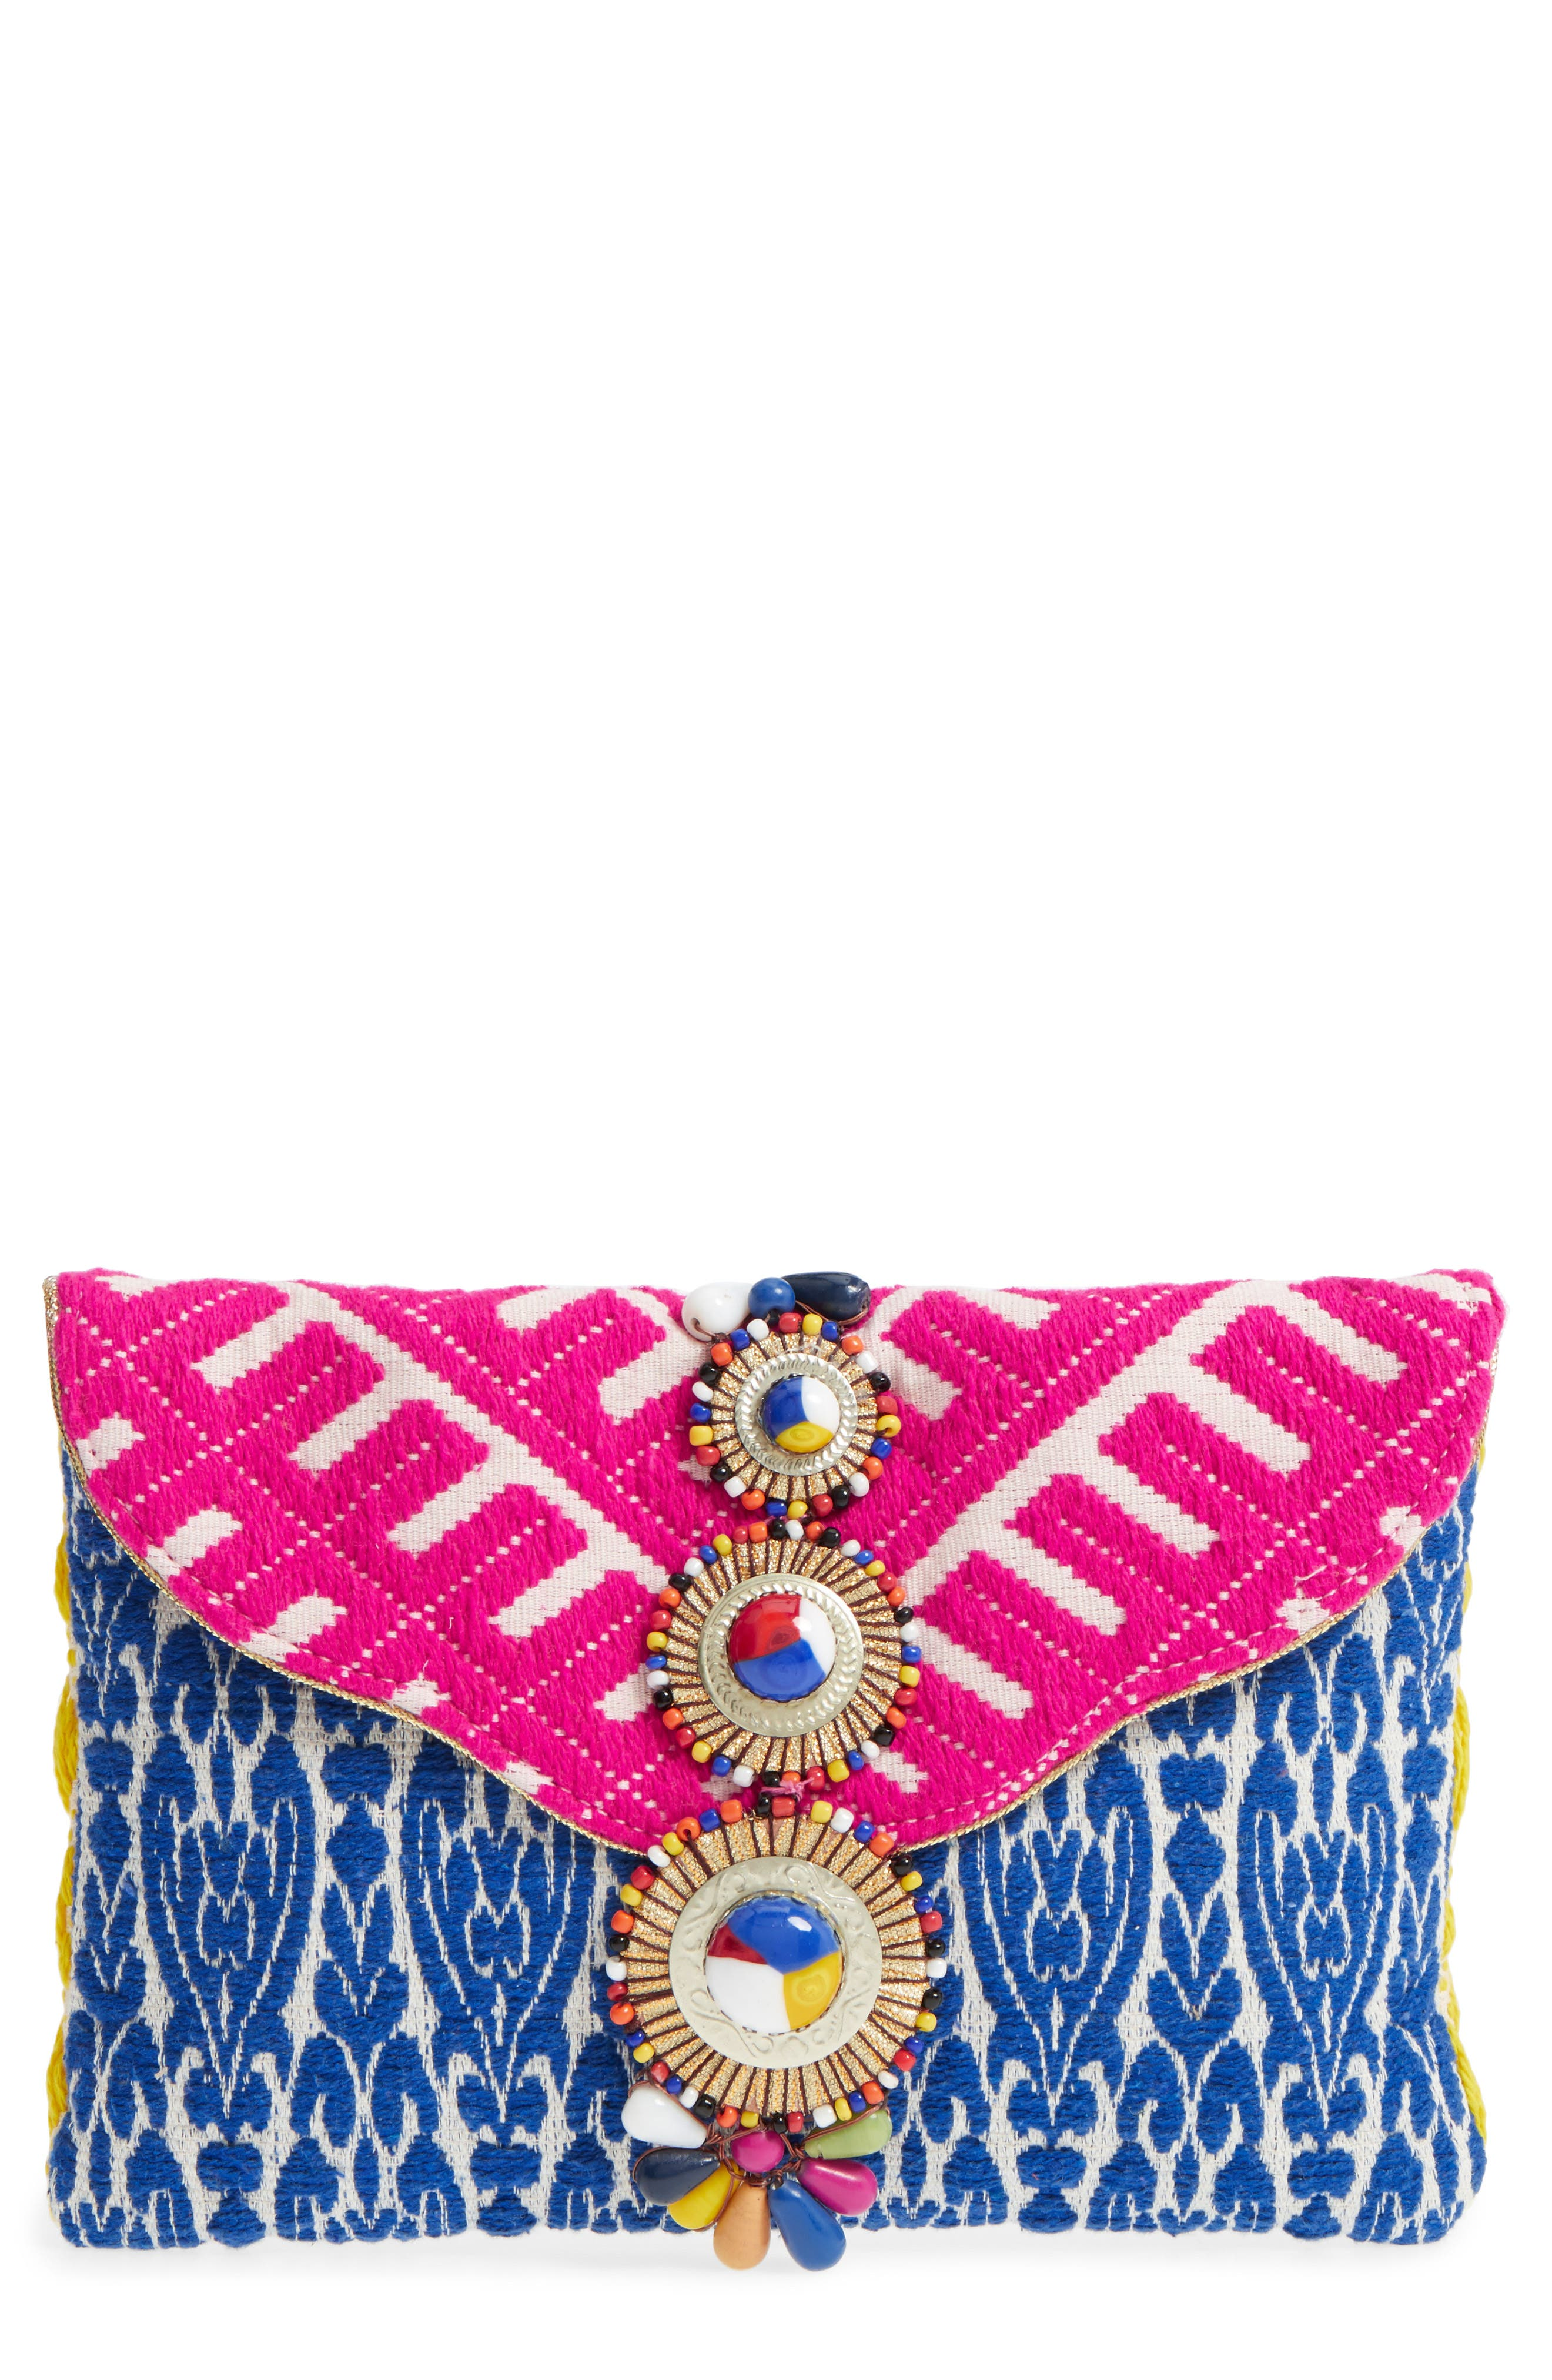 Alternate Image 1 Selected - Steven by Steve Madden Beaded & Embroidered Clutch